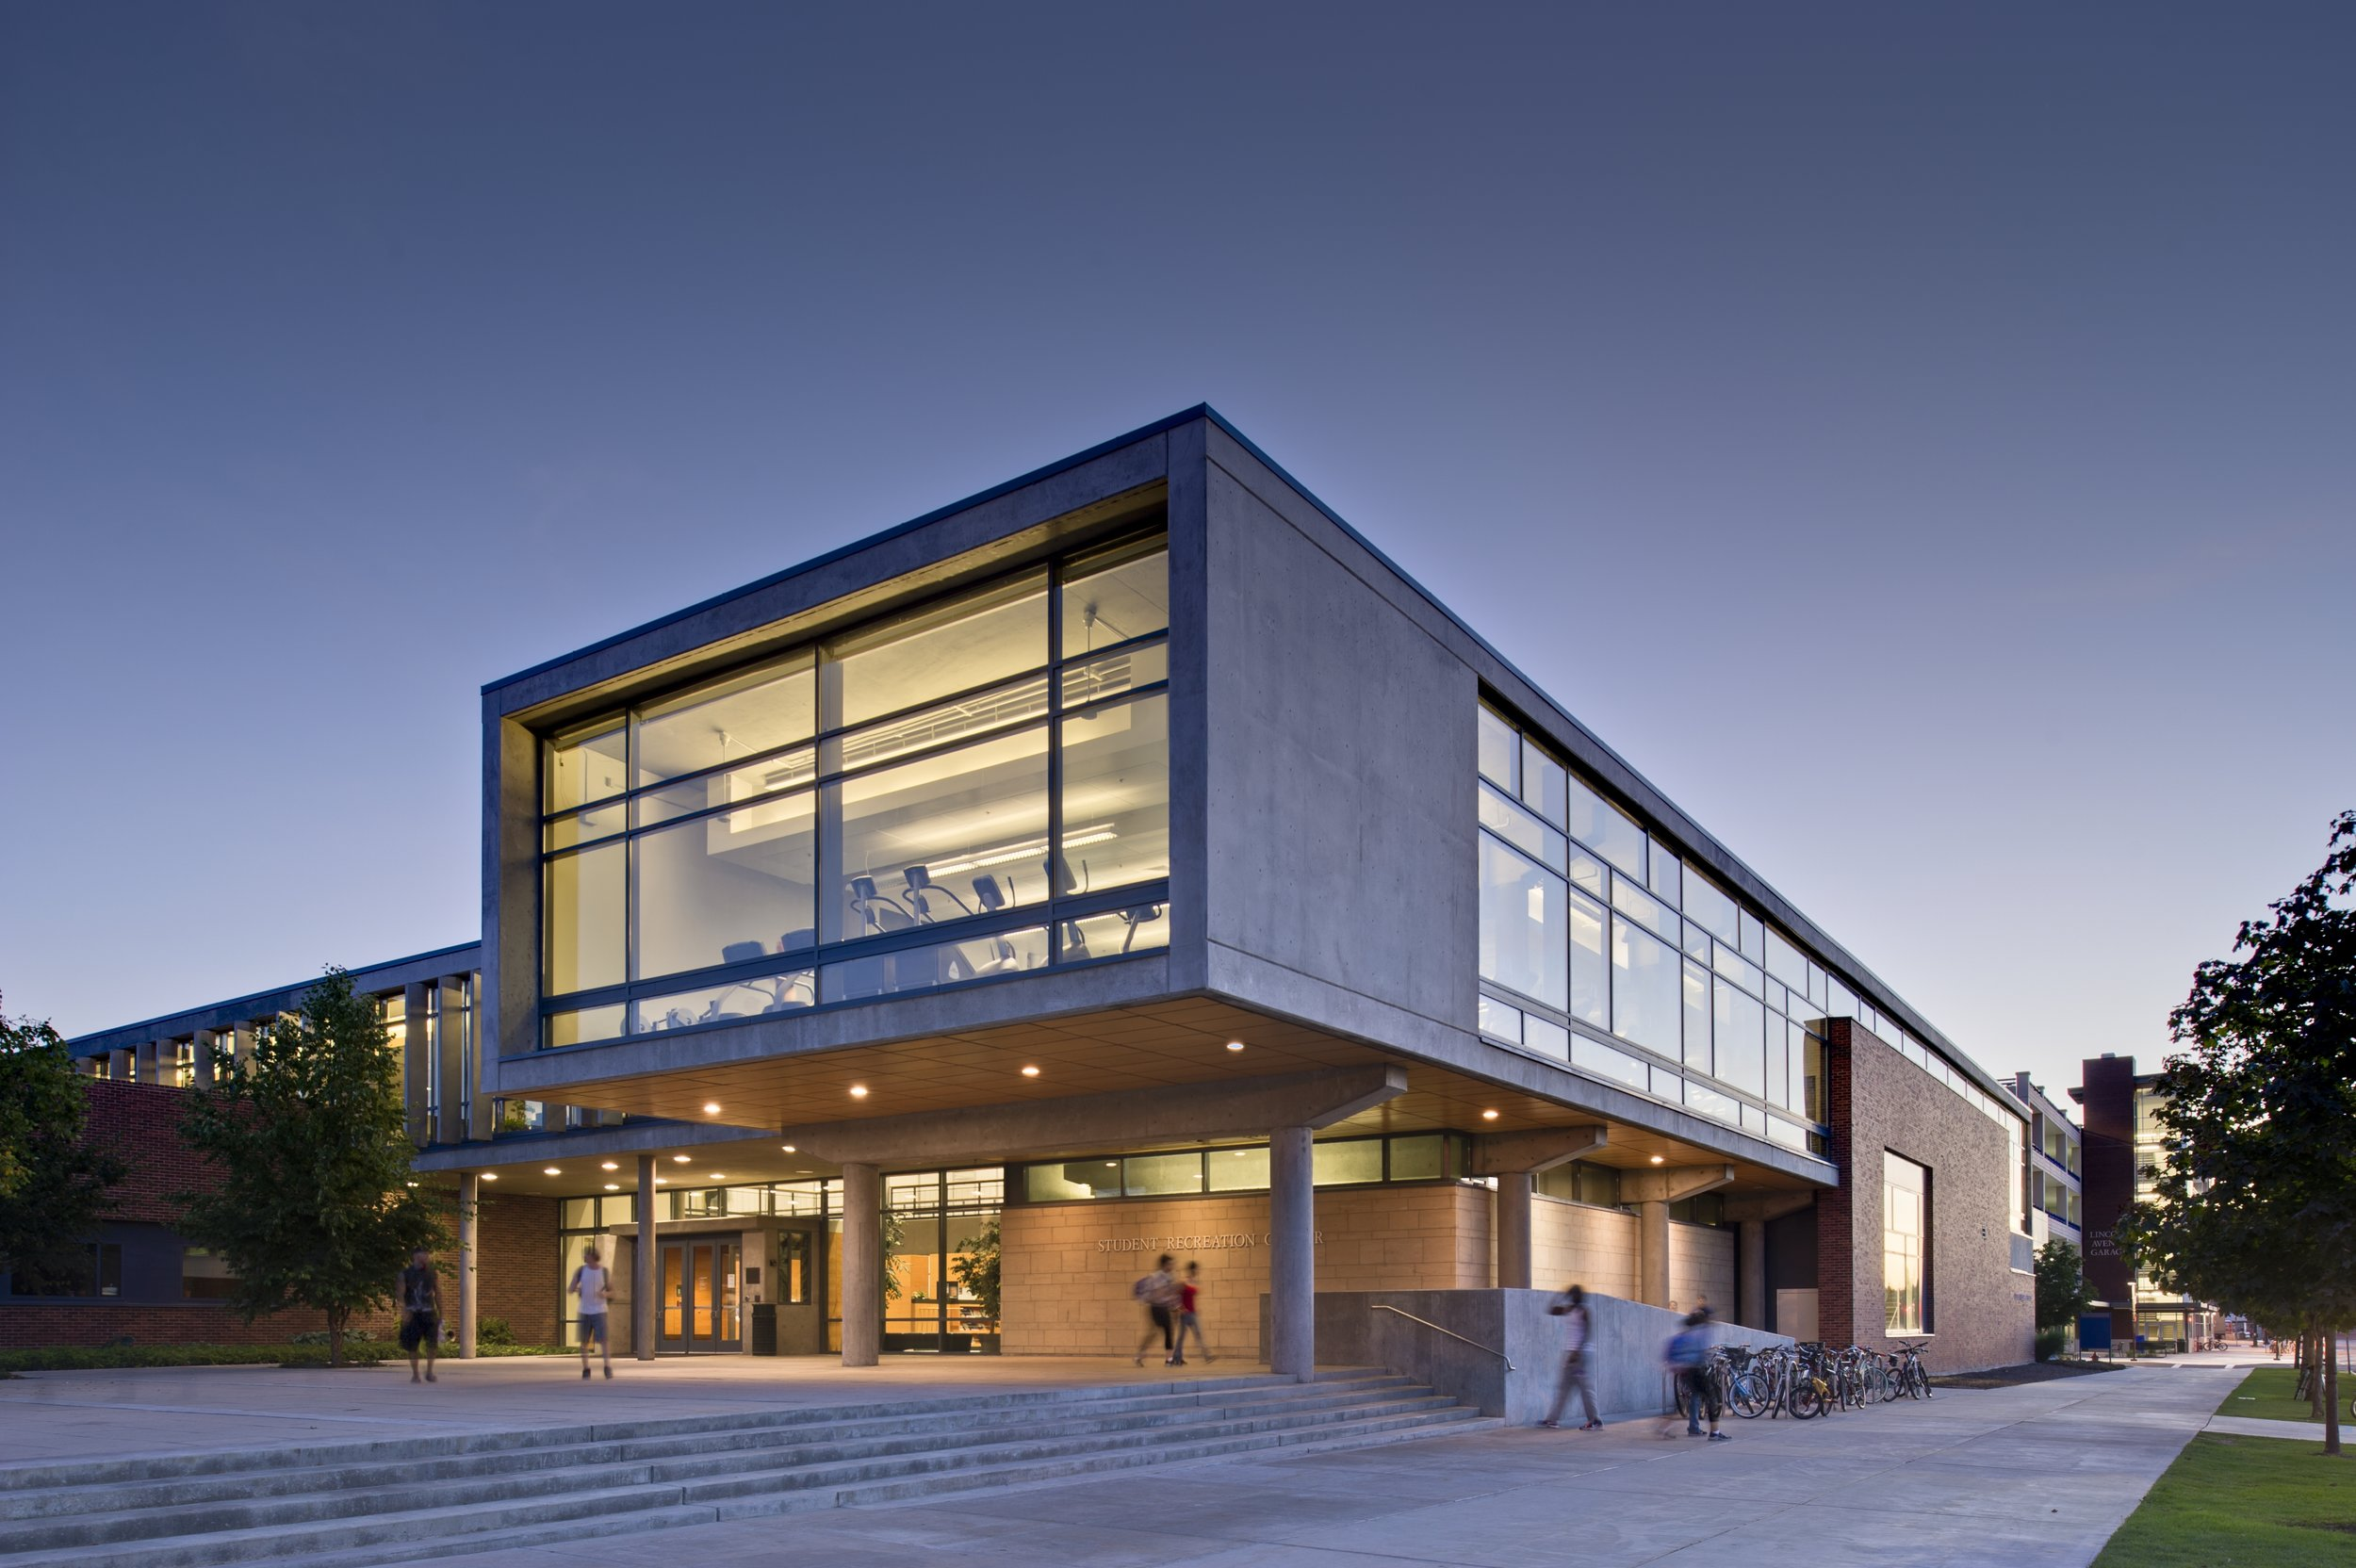 Boise State University Recreation and Aquatic Center